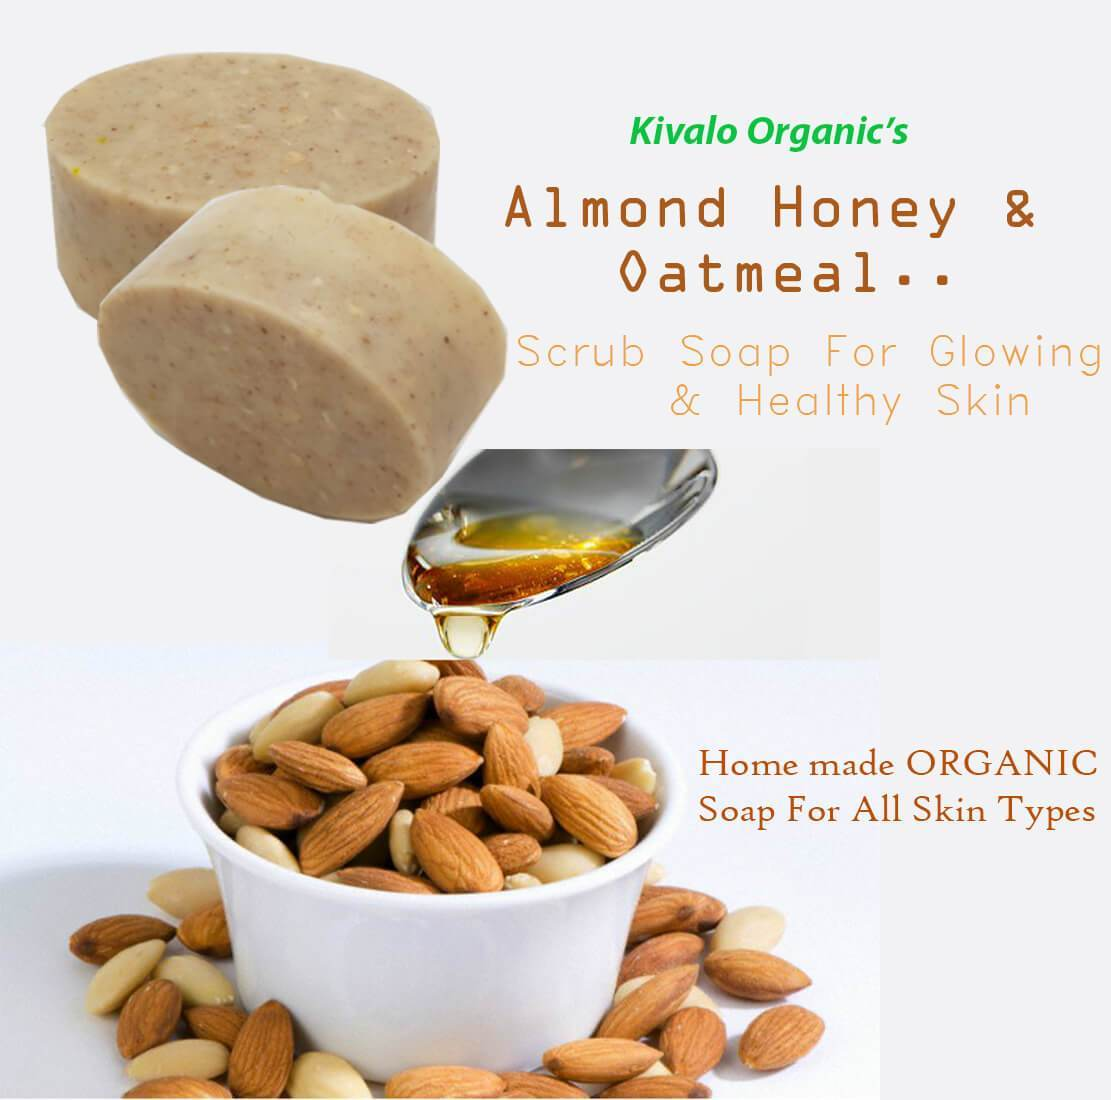 Organic Soap Almond, Honey & Oatmeal Scrub Bath Soap